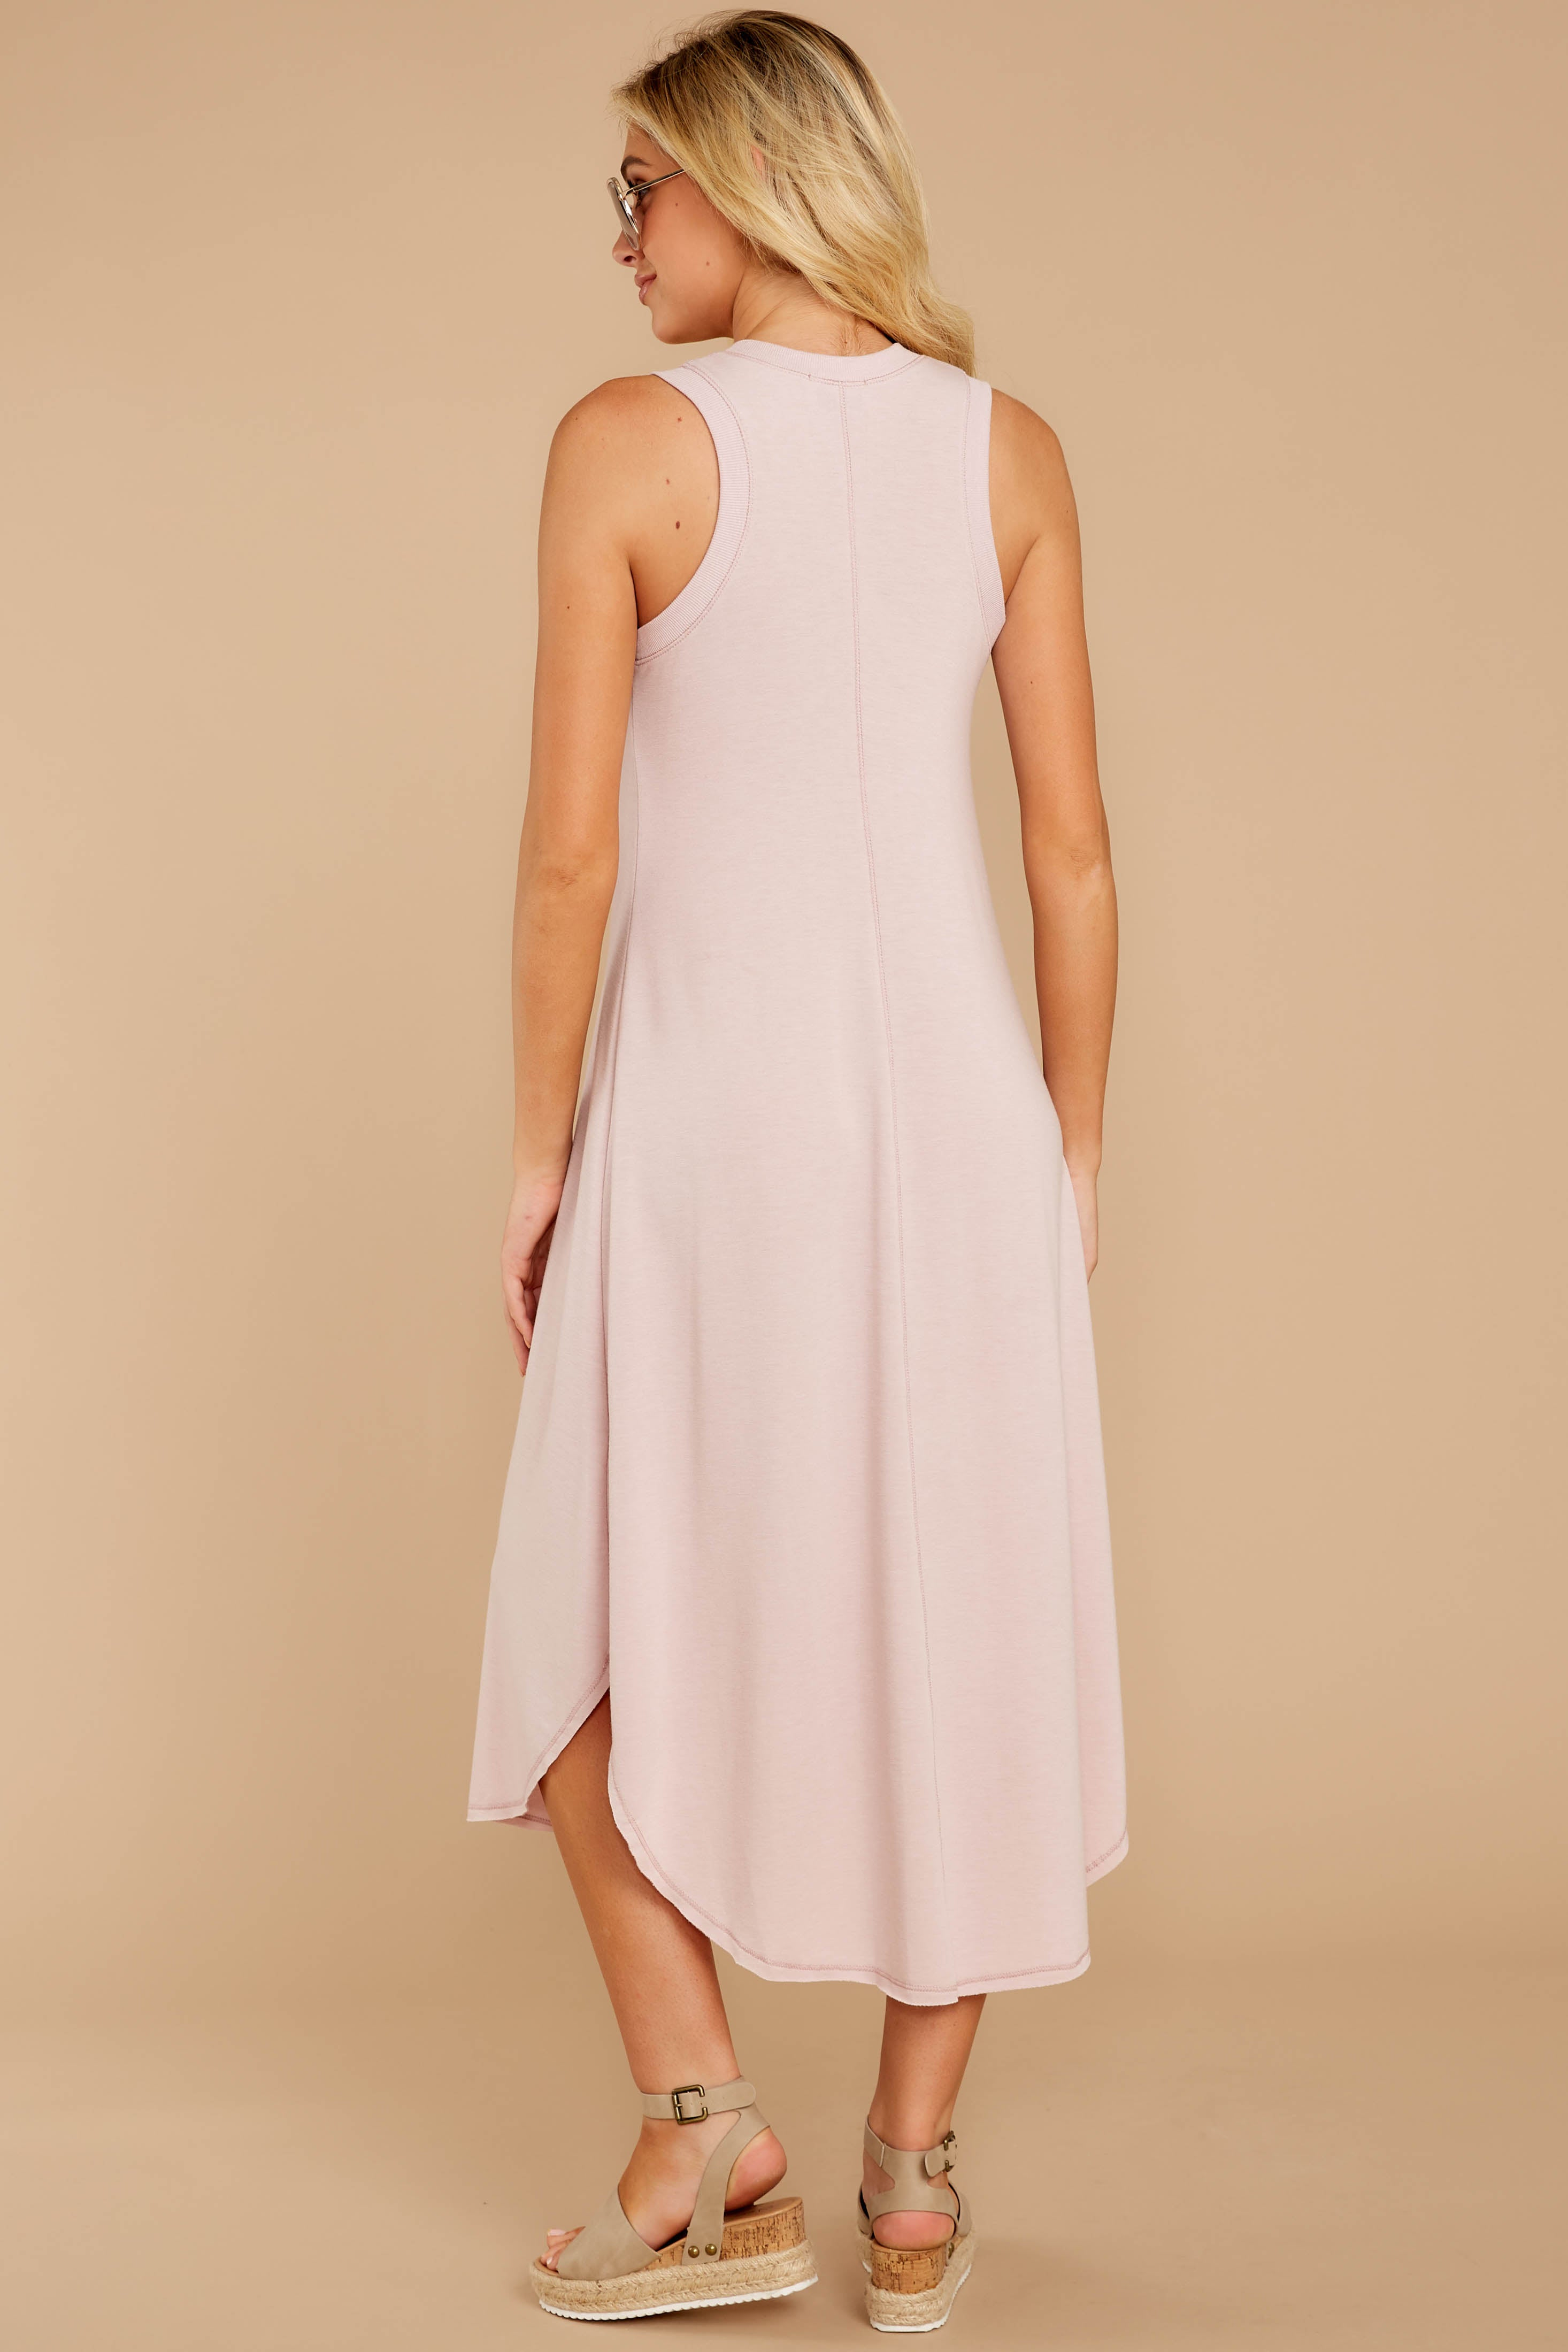 7 Unleashed Comfort Powder Pink Midi Dress at reddressboutique.com